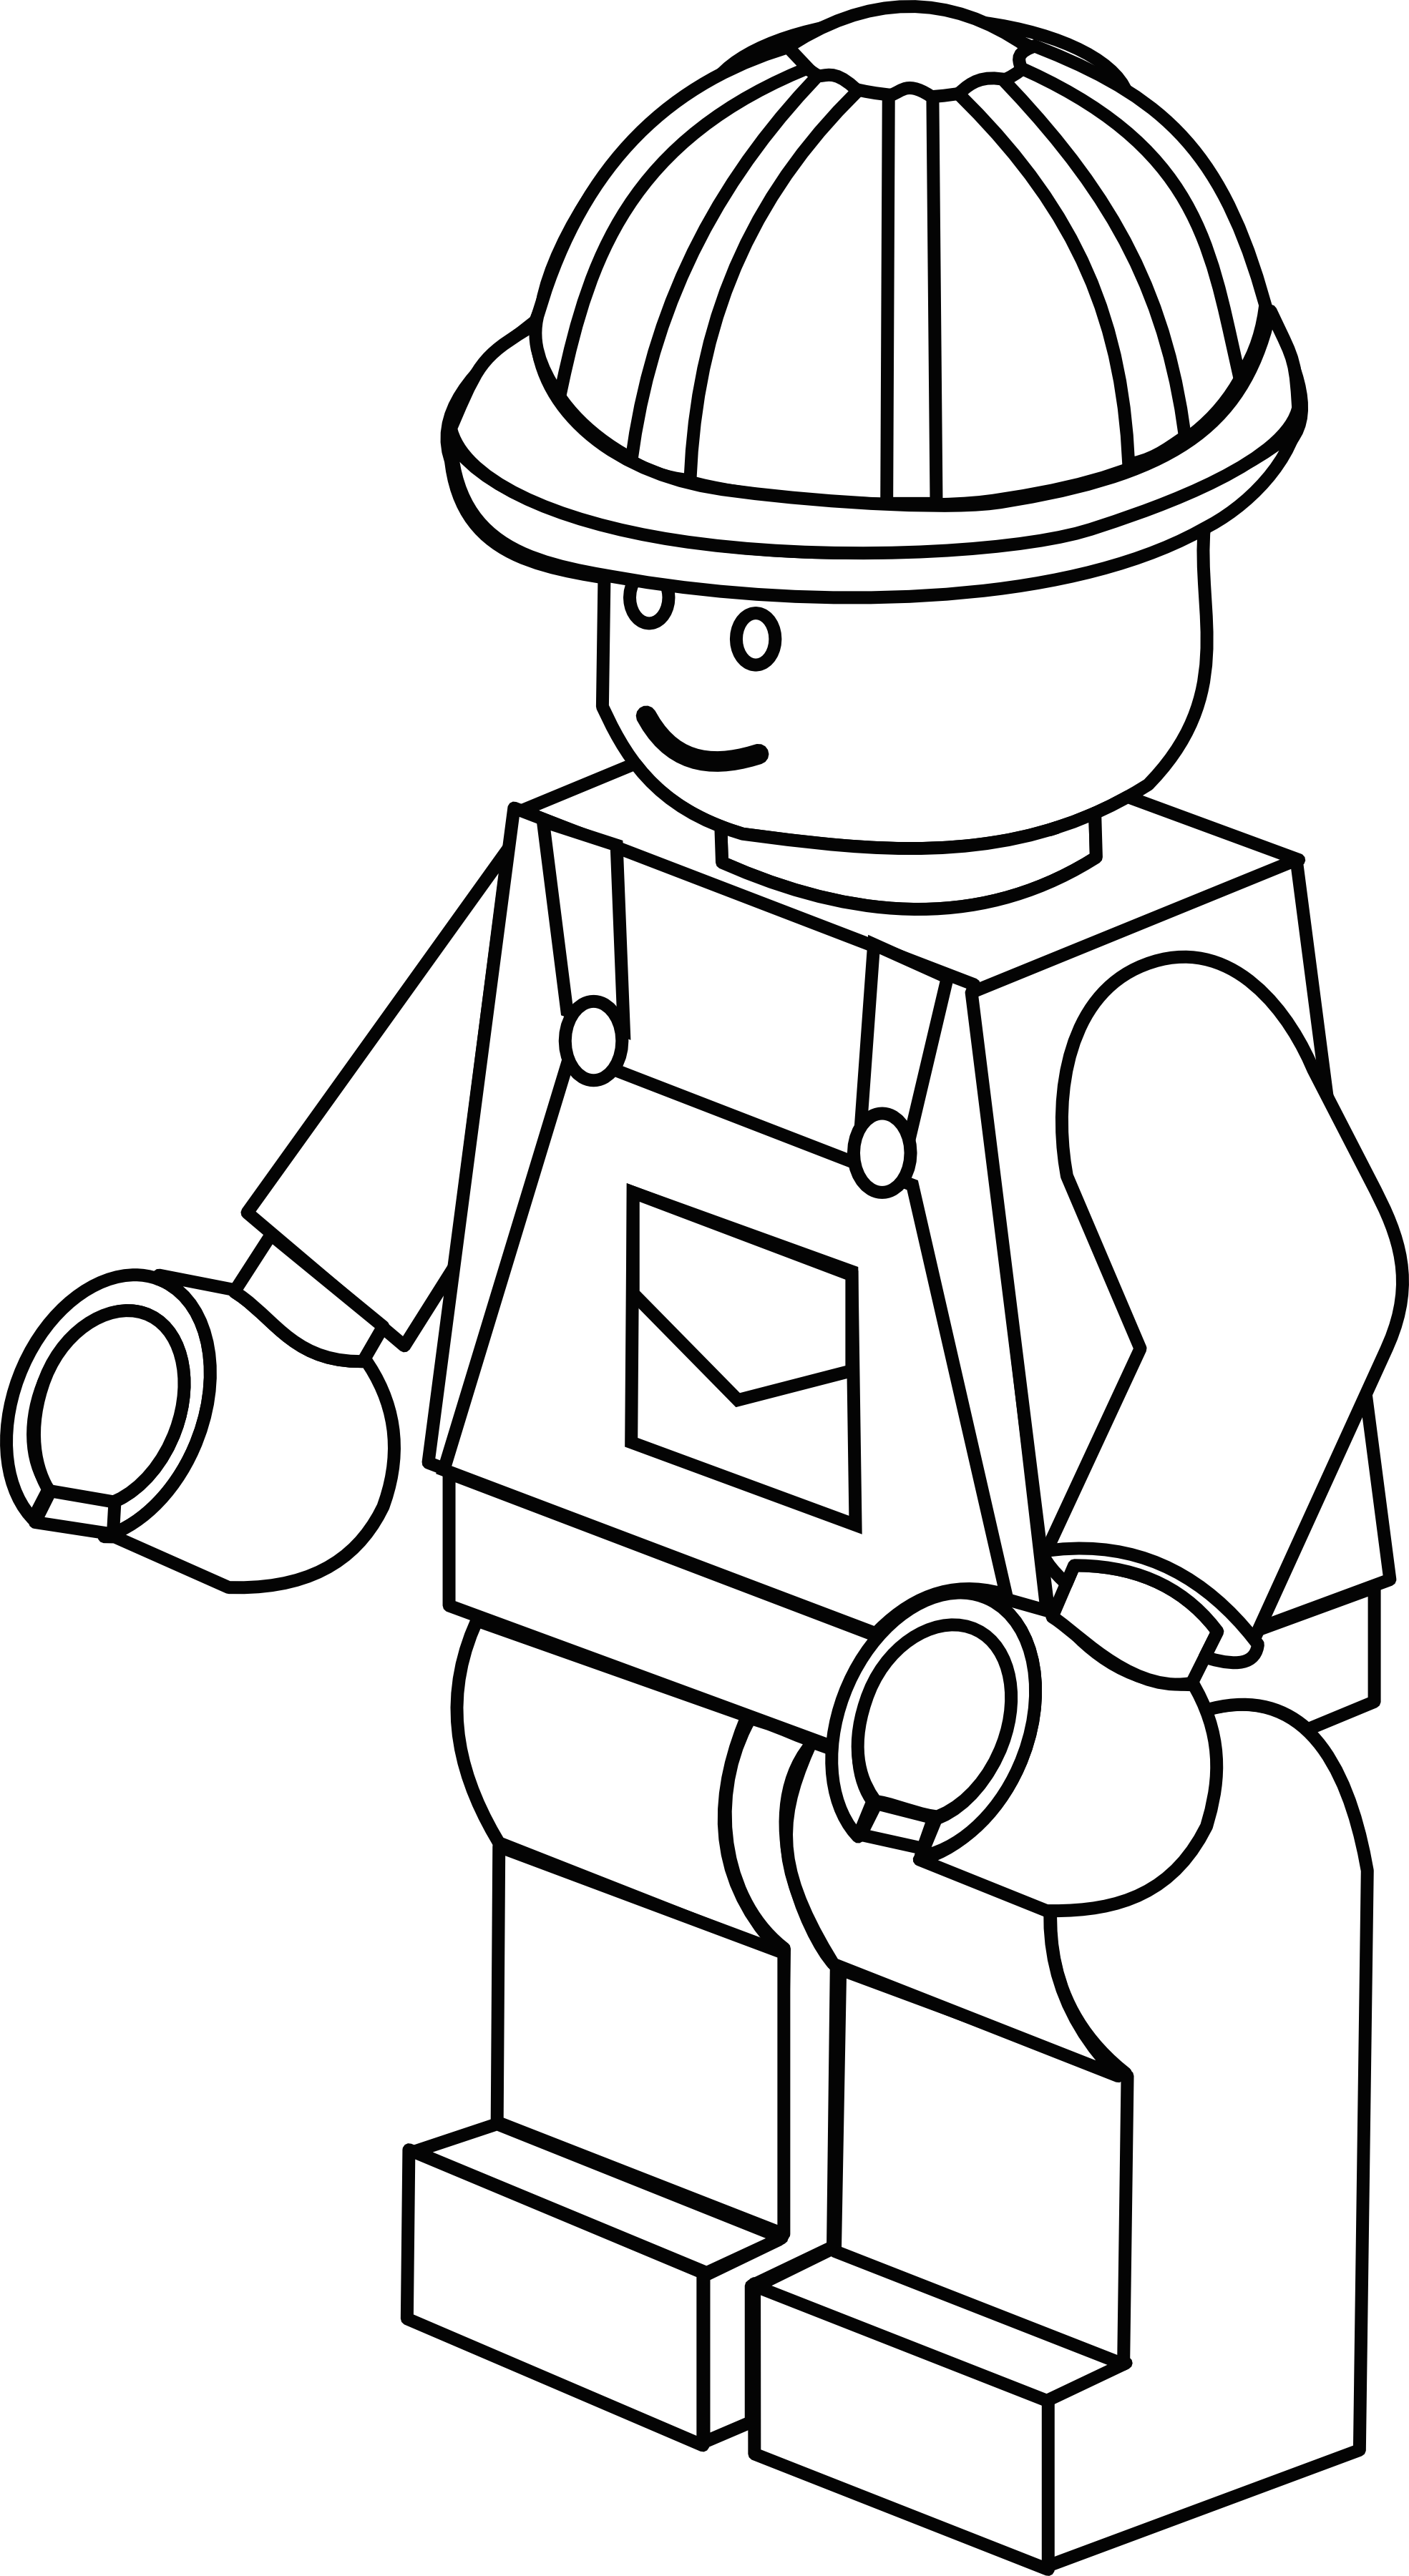 lego coloring sheets free free coloring pages printable pictures to color kids lego free coloring sheets